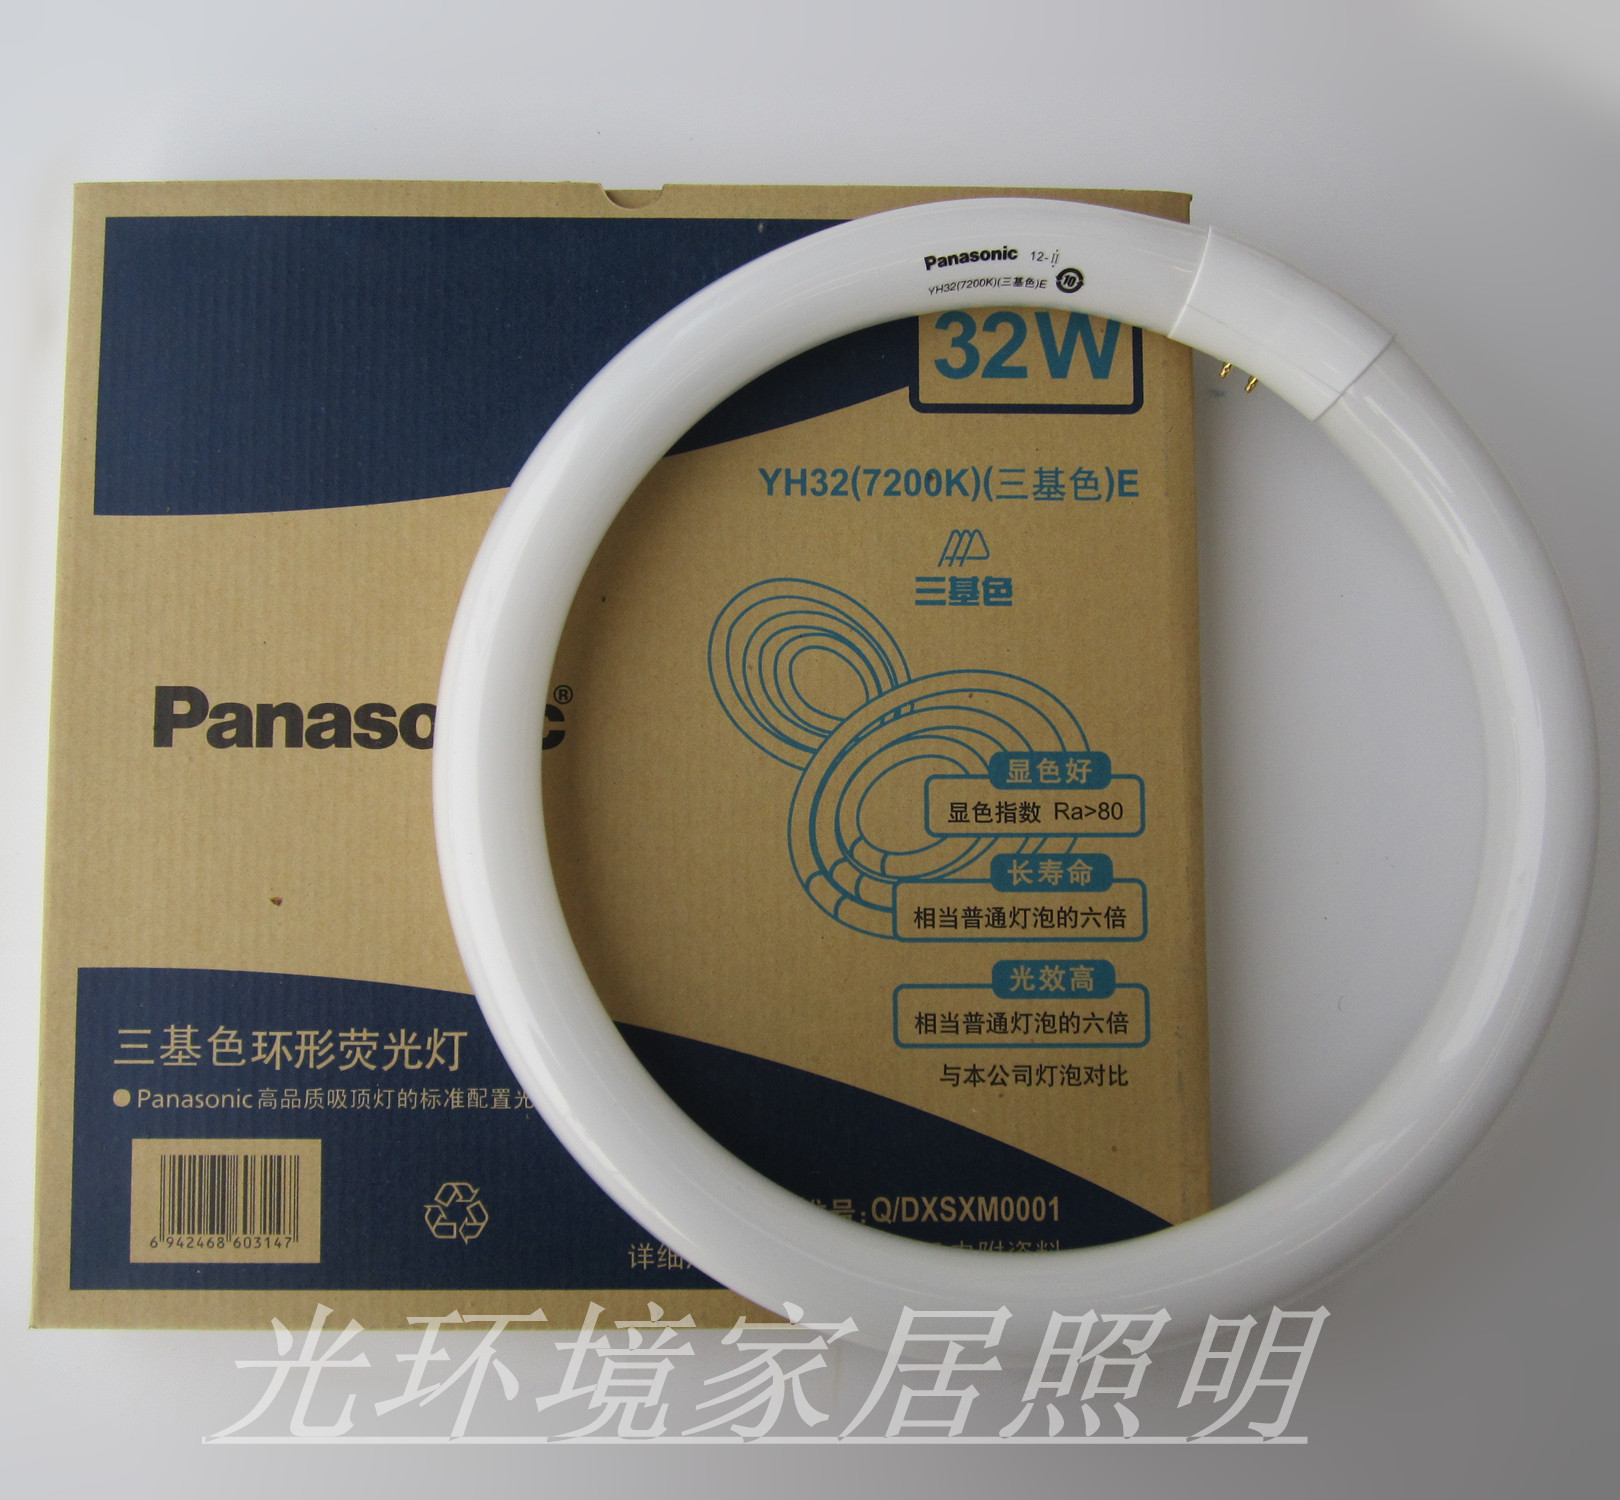 Panasonic T8 Ring Fluorescent Lamp Round Lamp Ceiling Lamp Thick Lamp Yh22w Yh32w Three Base Color